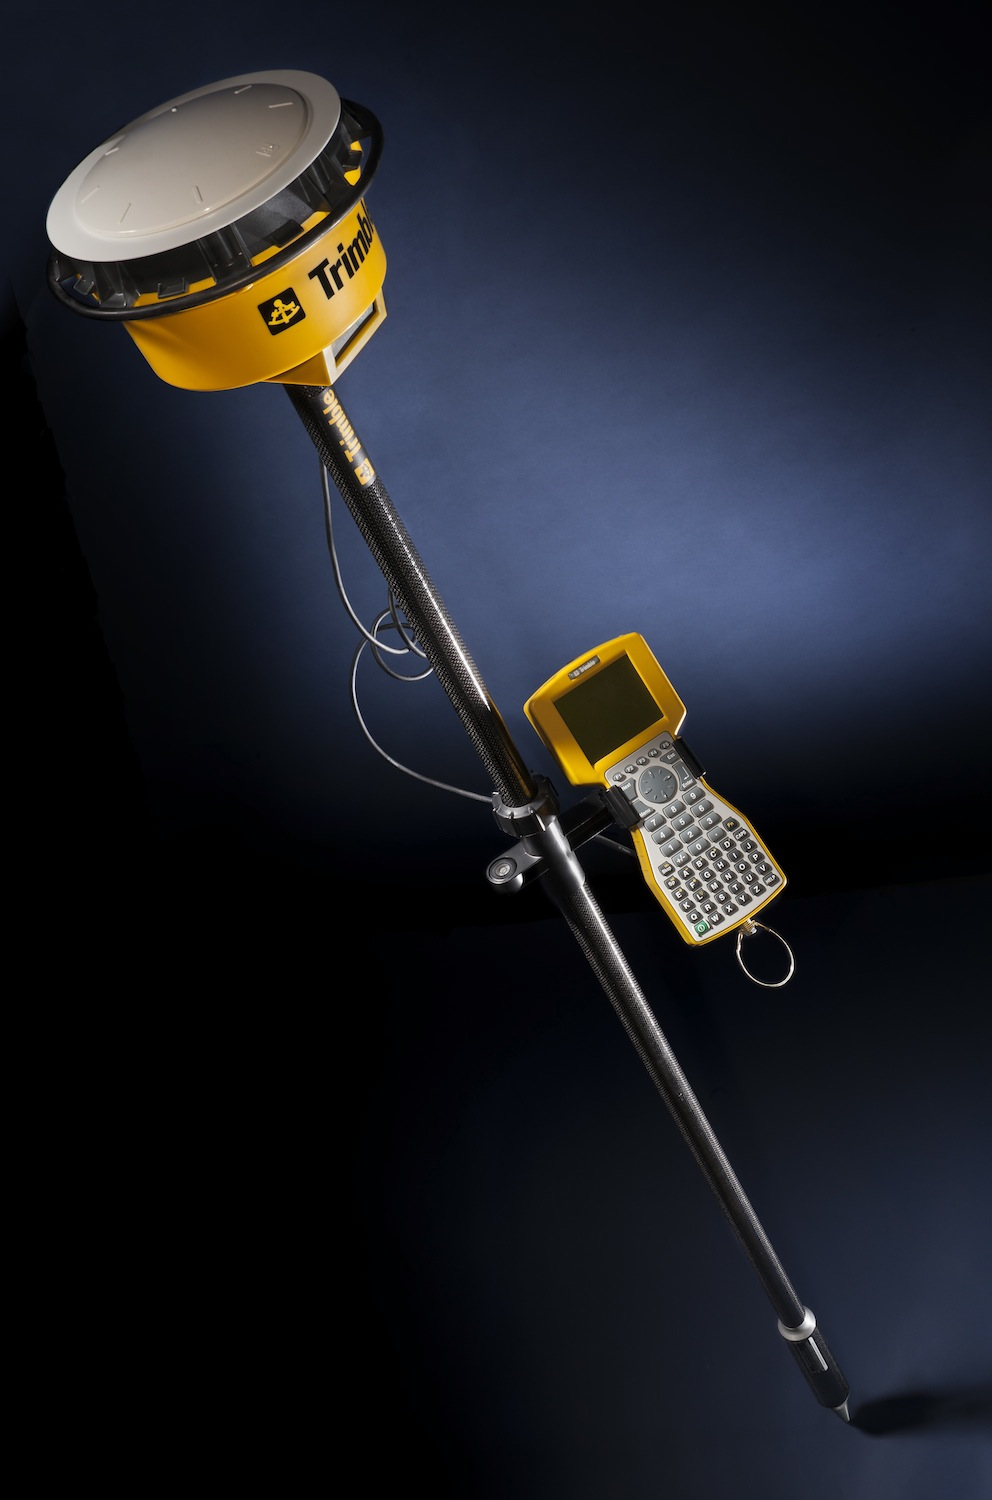 Trimble 4800 Gps Total Station 1997 Time And Navigation